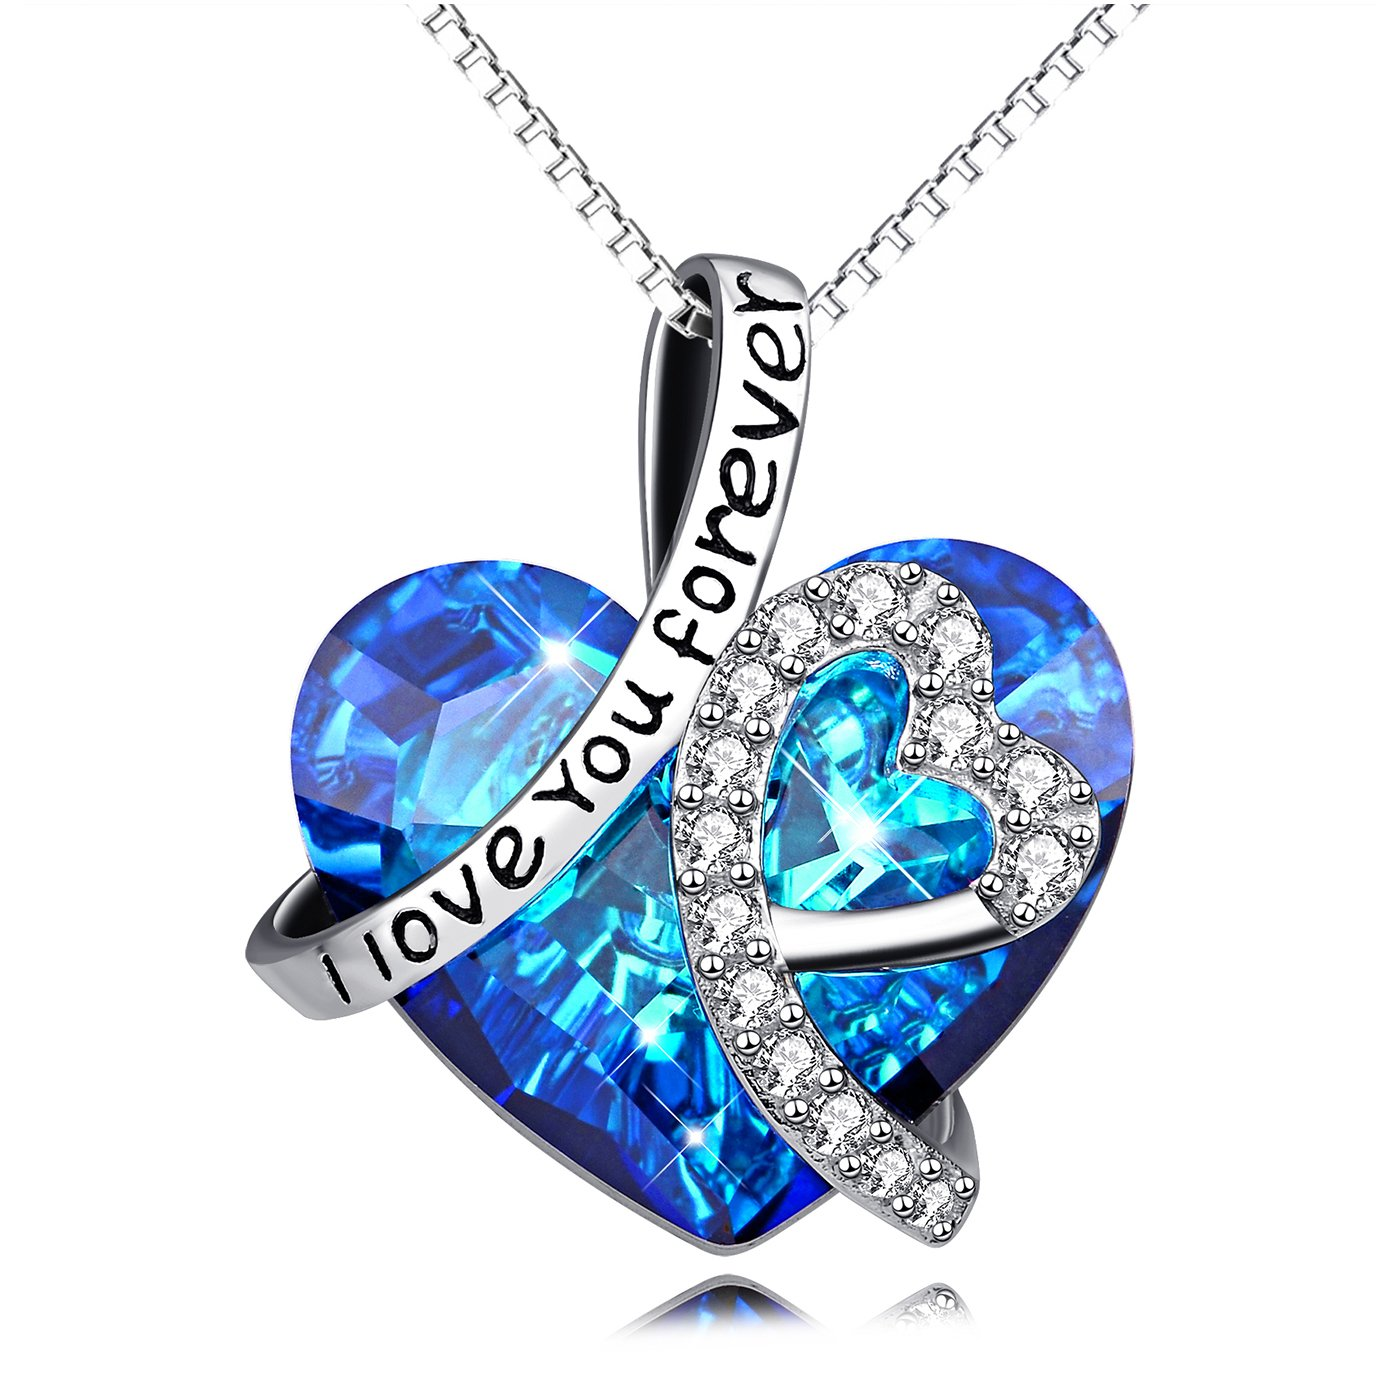 AOBOCO Heart Necklace 925 Sterling Silver I Love You Forever Pendant Necklace with Blue Swarovski Crystals Jewelry for Women Anniversary Birthday Gifts for Girls Girlfriend Wife Daughter Mom